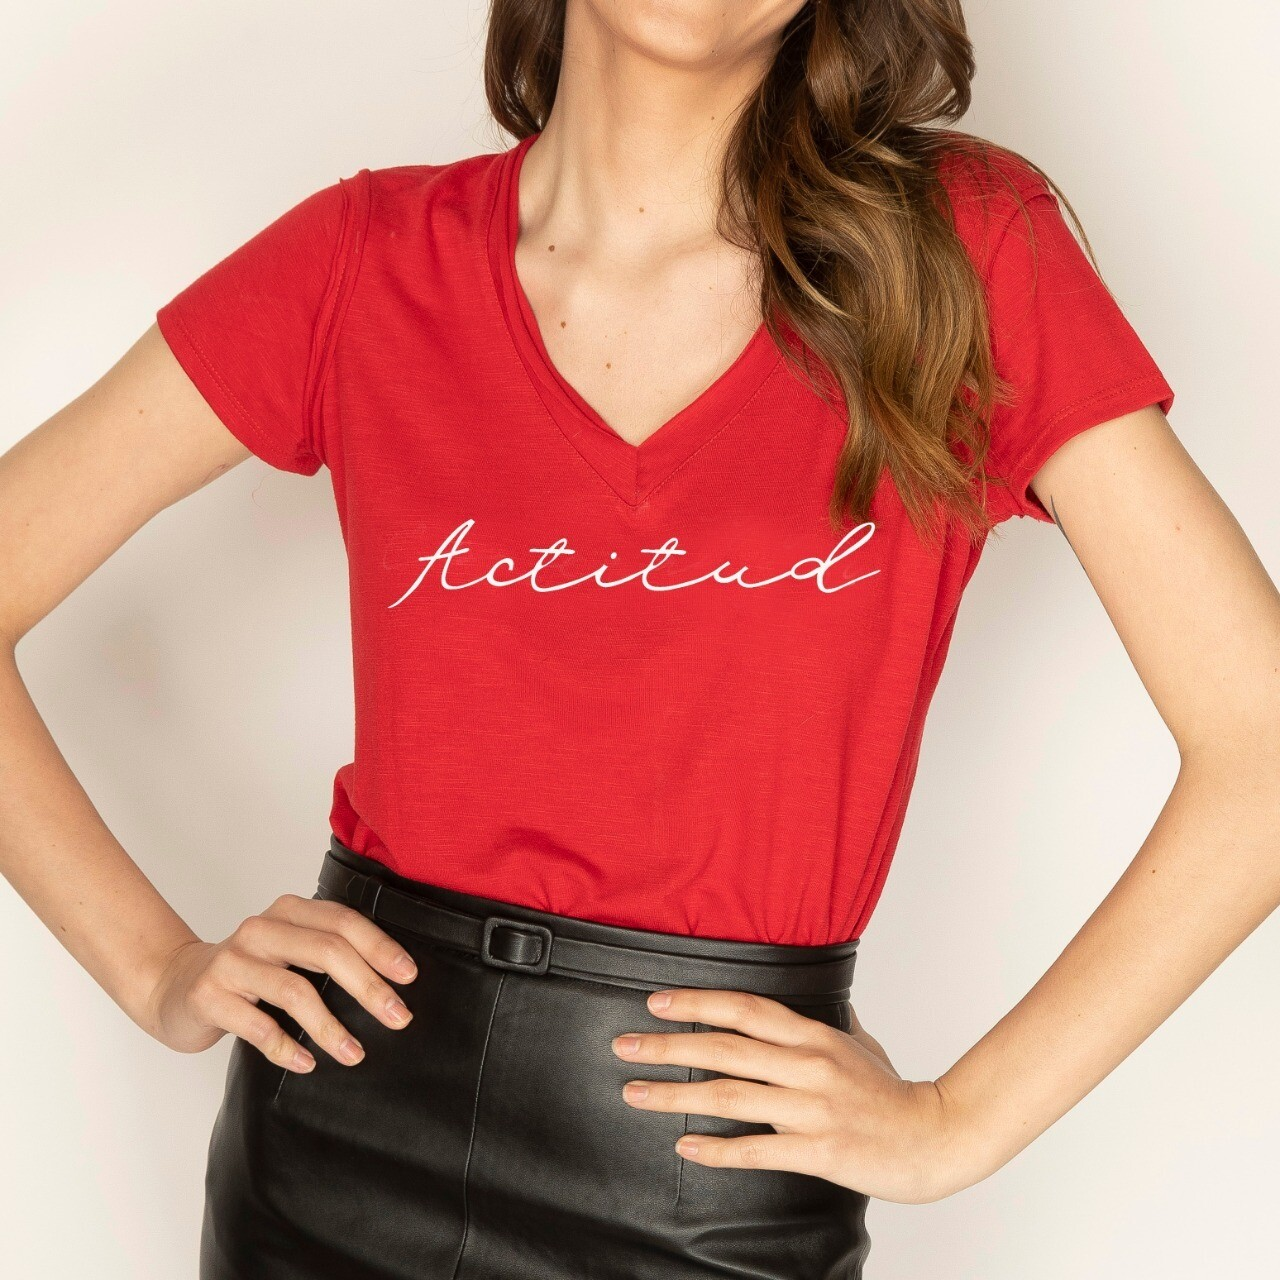 Remera Actitud by CM